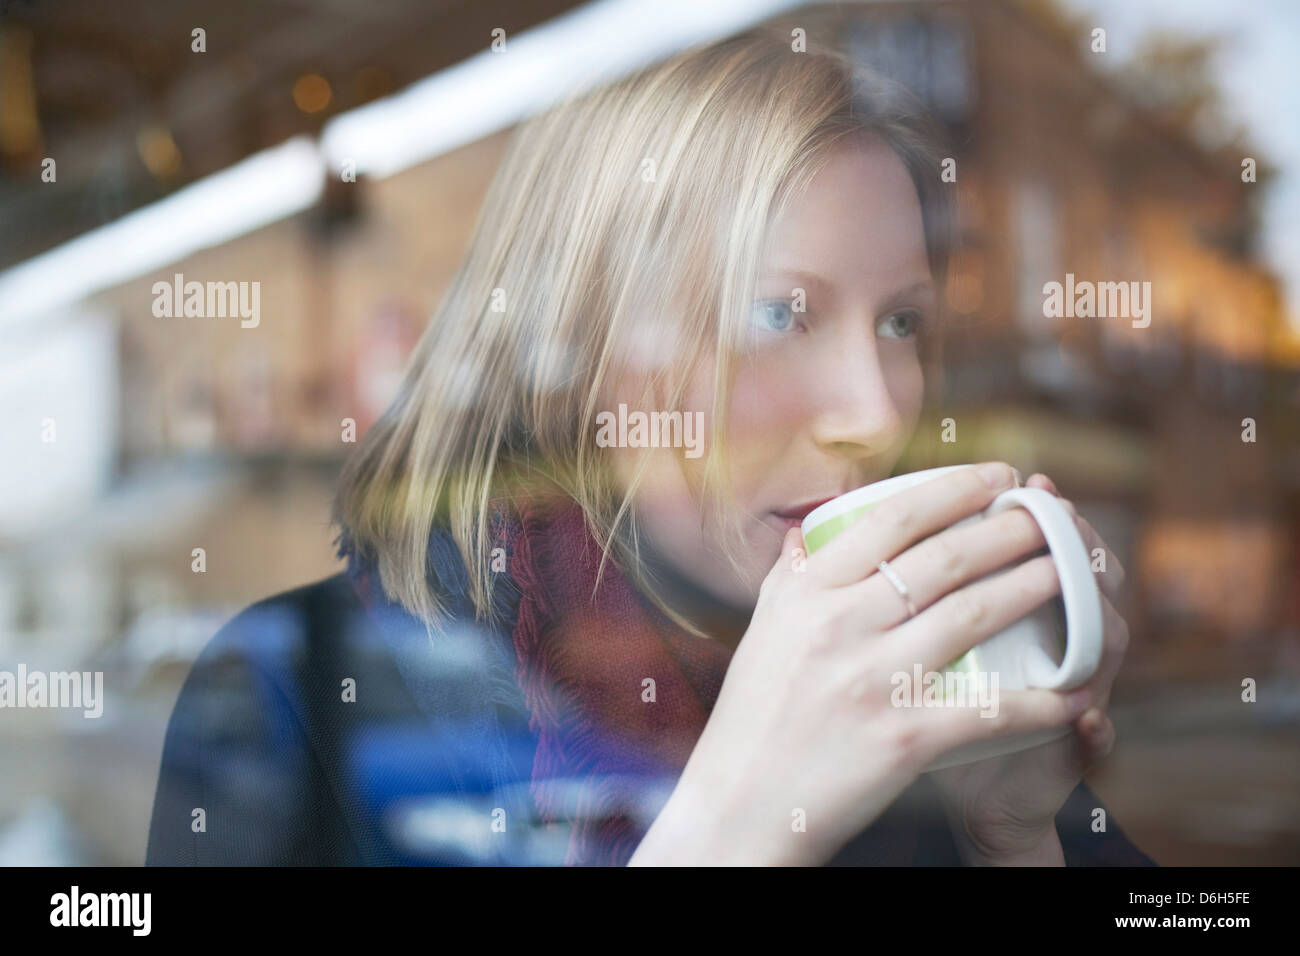 Woman in cafe Photo Stock